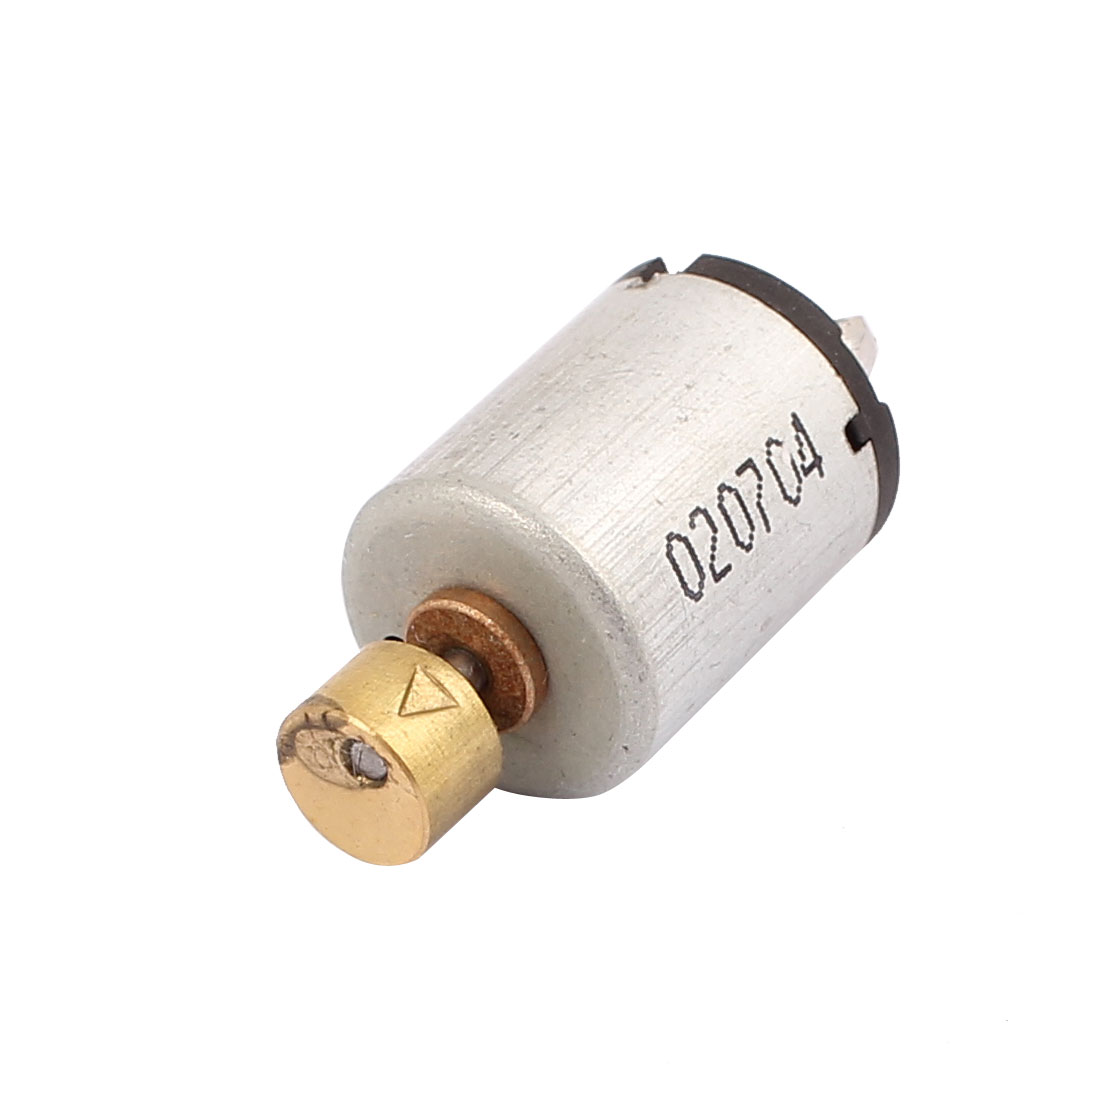 DC1.25-3.7V 22000RPM Large Torque Vibration DC Electric Motor for Electric Massager